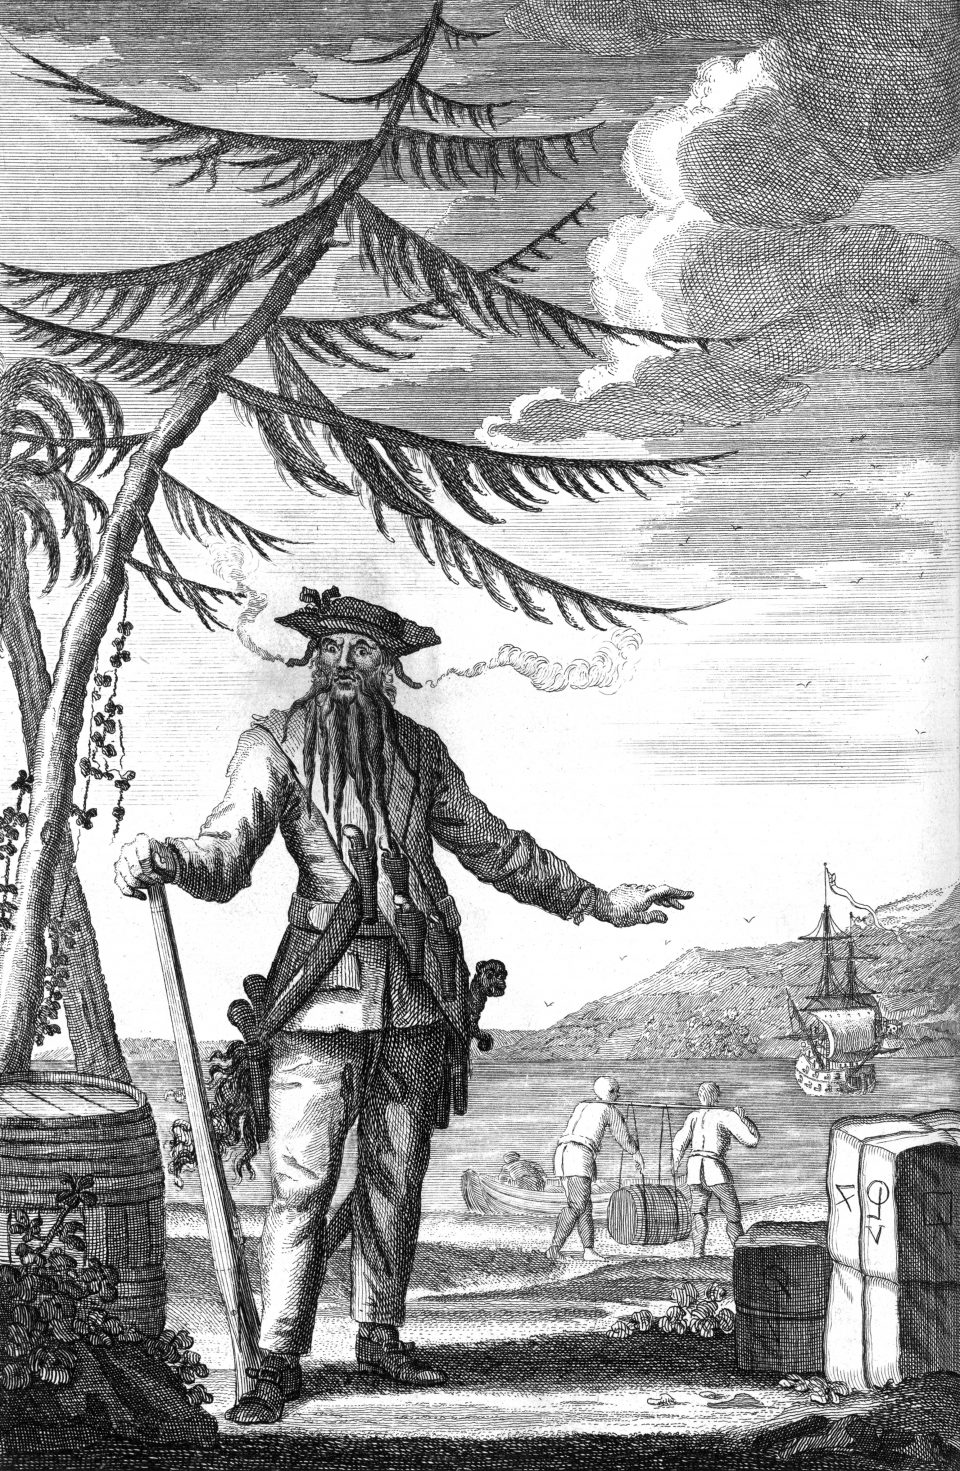 An engraving depicting Edward Teach, also known as Blackbeard the Pirate, who died in a conflict at Ocracoke Island, North Carolina in 1718. The ship Queen Anne's Revenge can be seen in the distance.